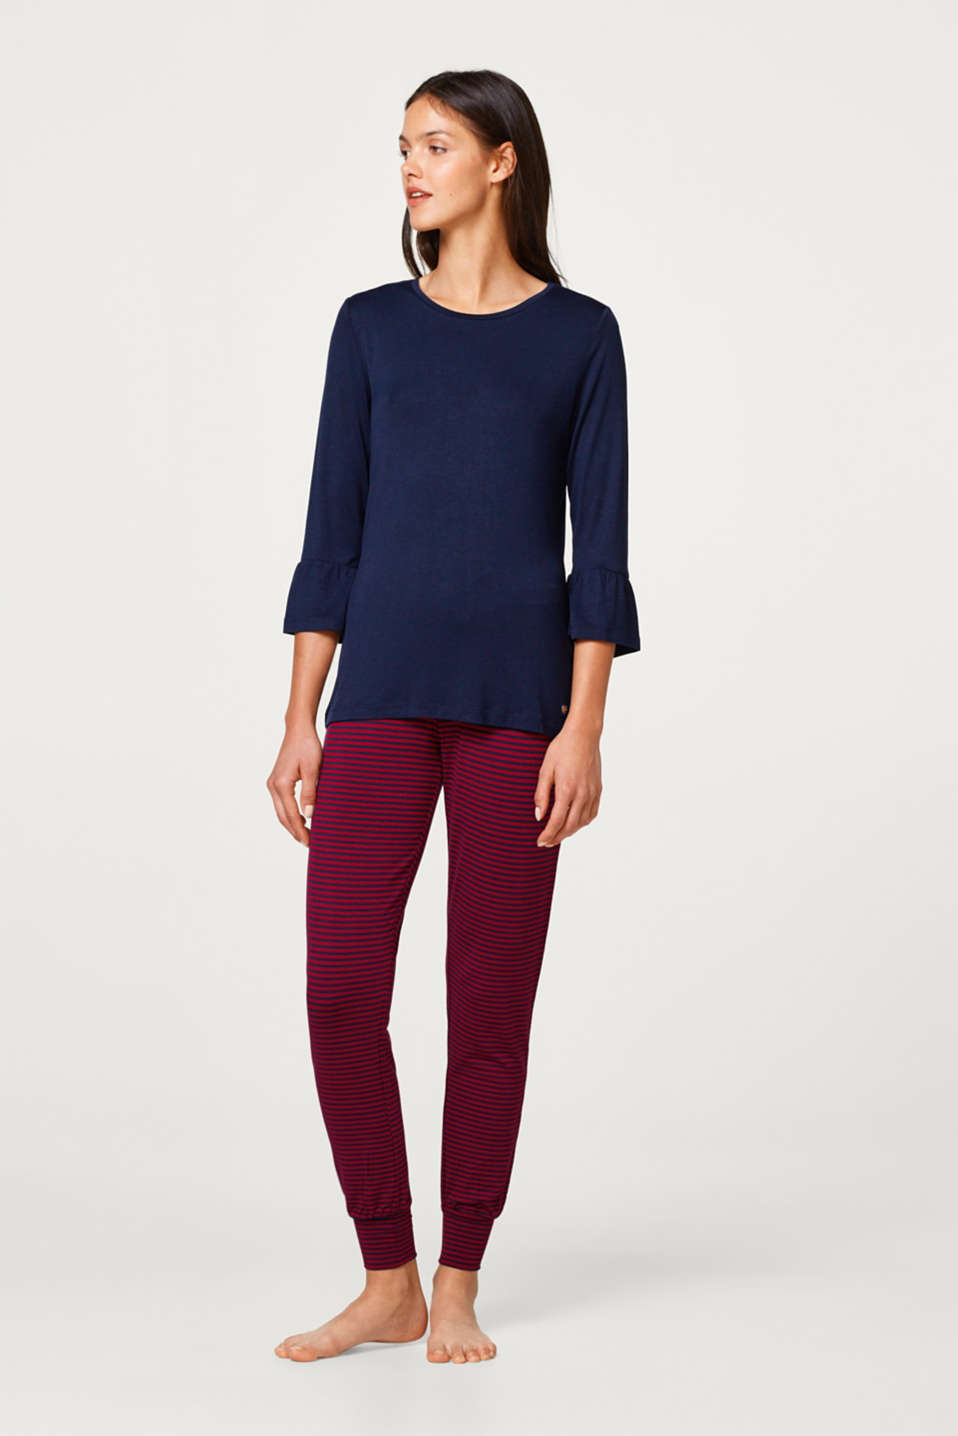 Esprit - Stretch jersey pyjamas with flounce sleeves